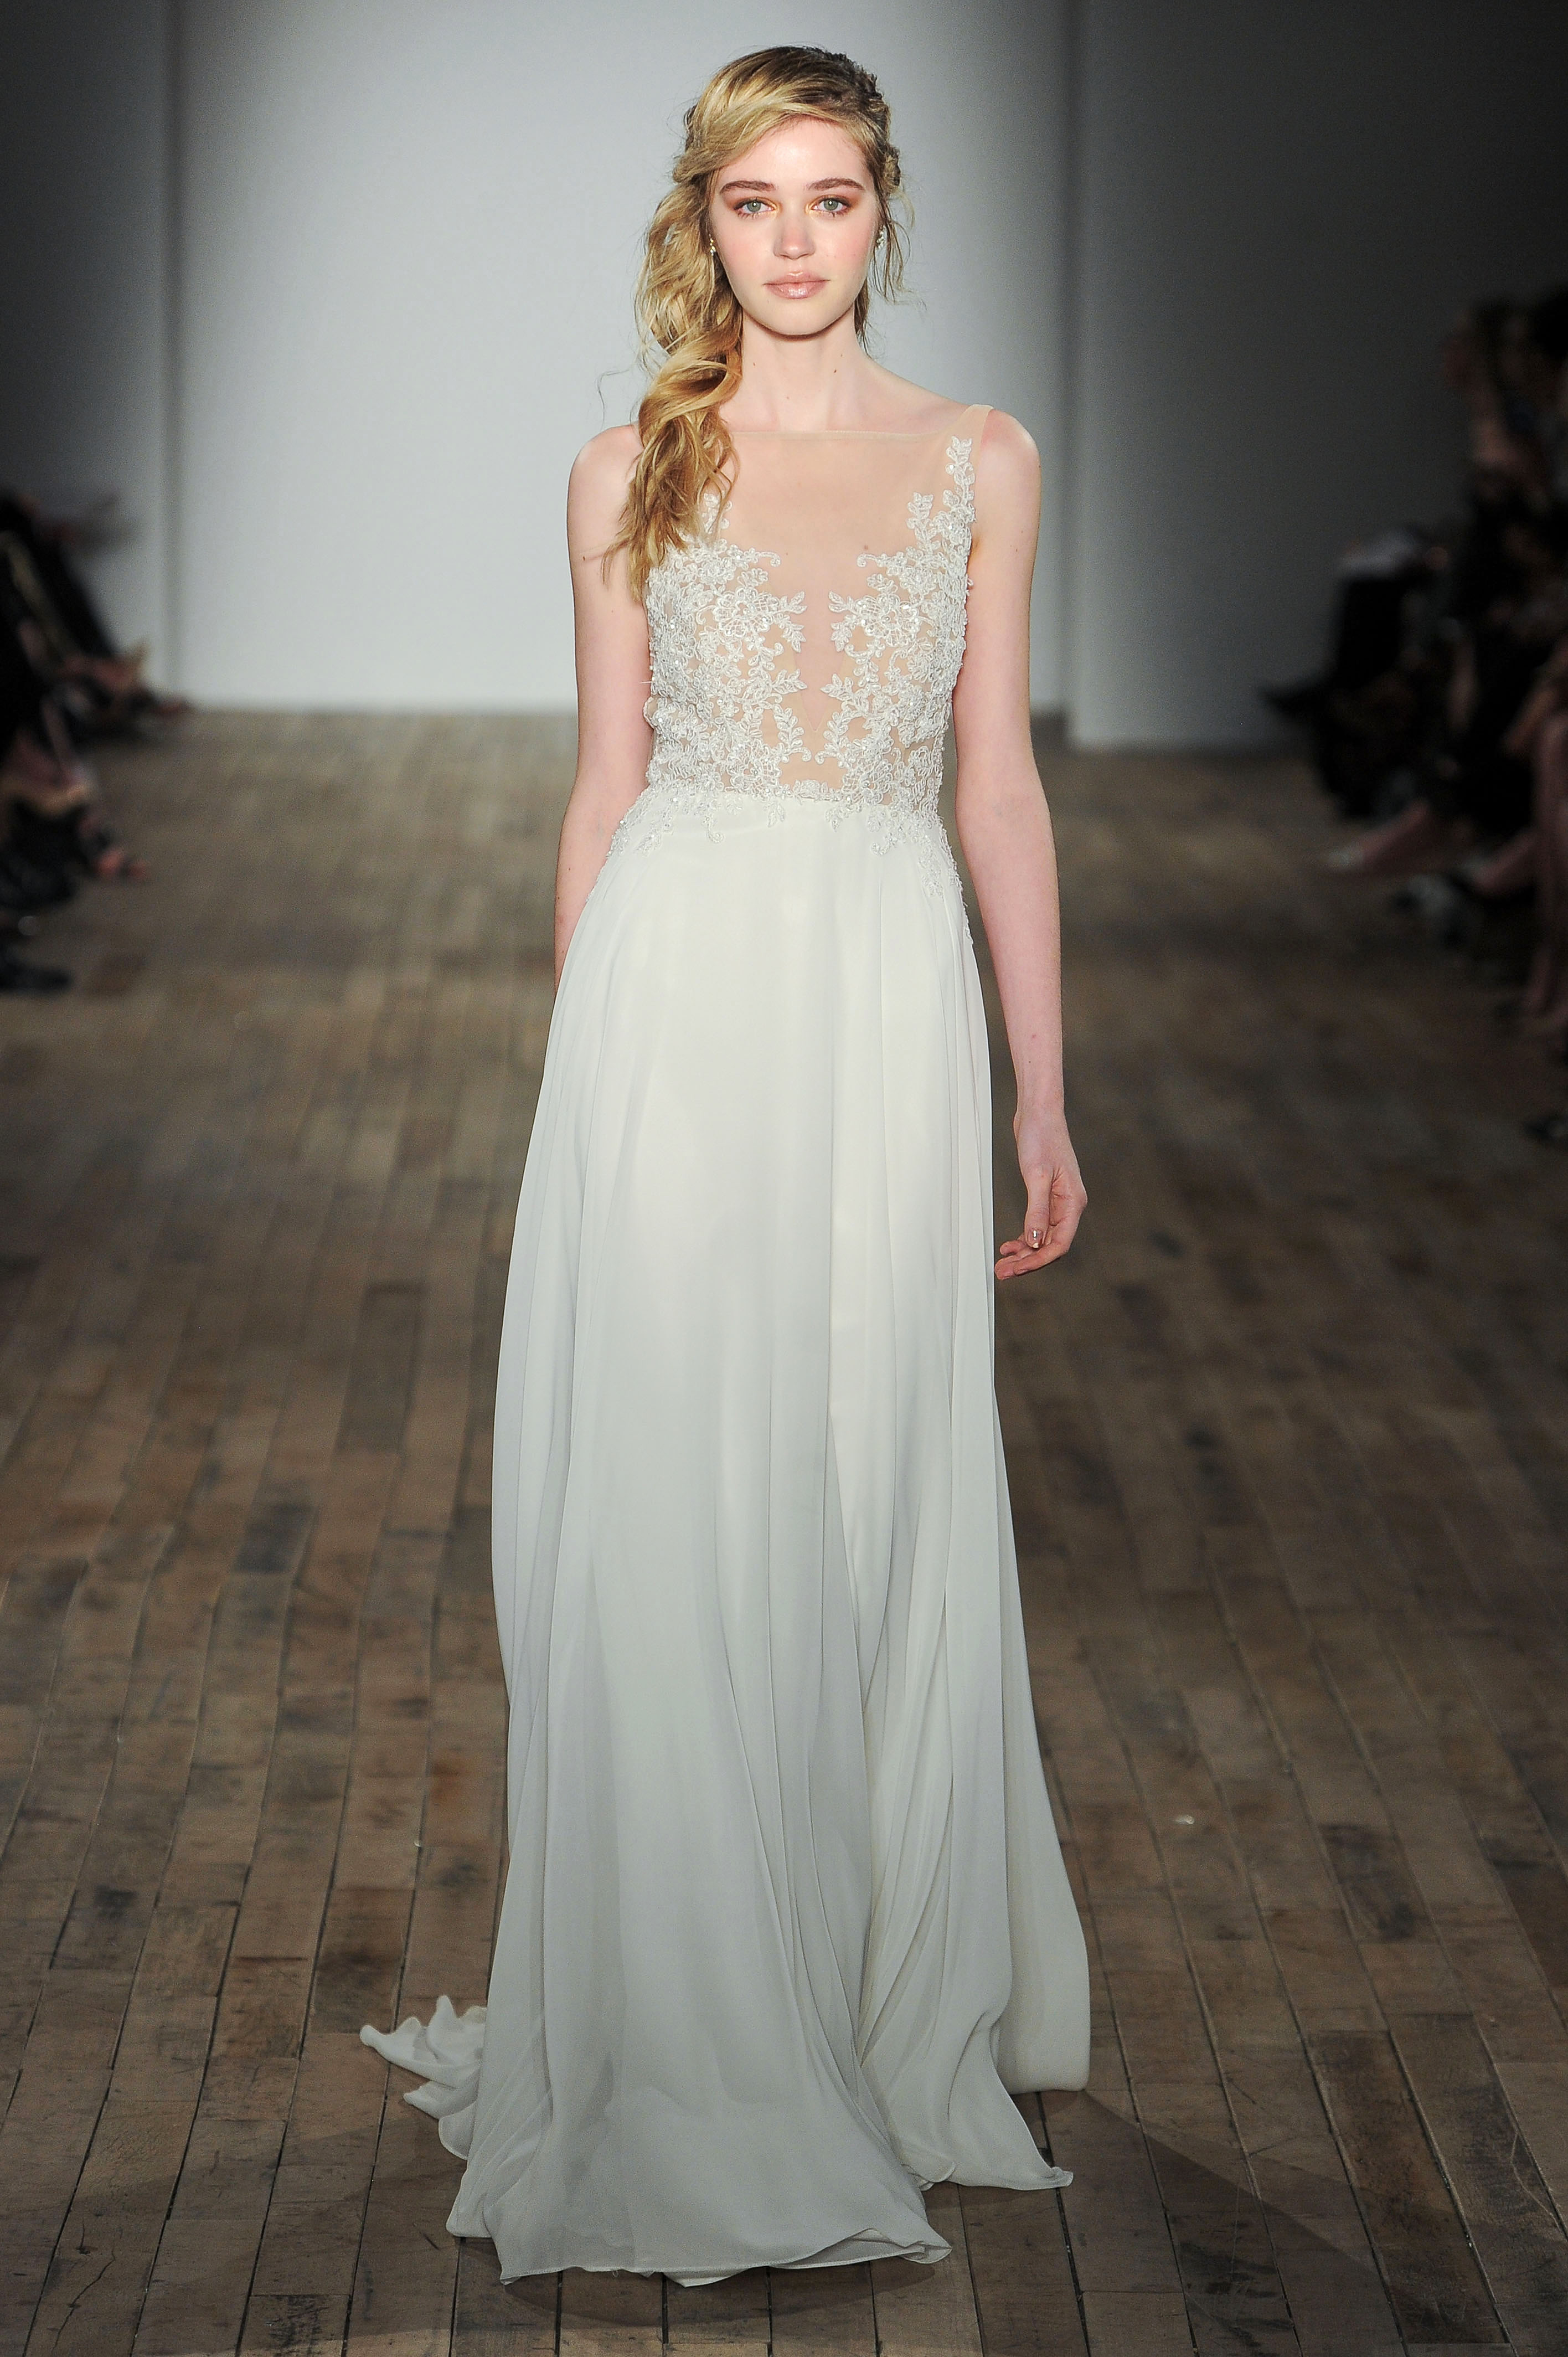 jlm tara keely embellished flowy wedding dress spring 2018